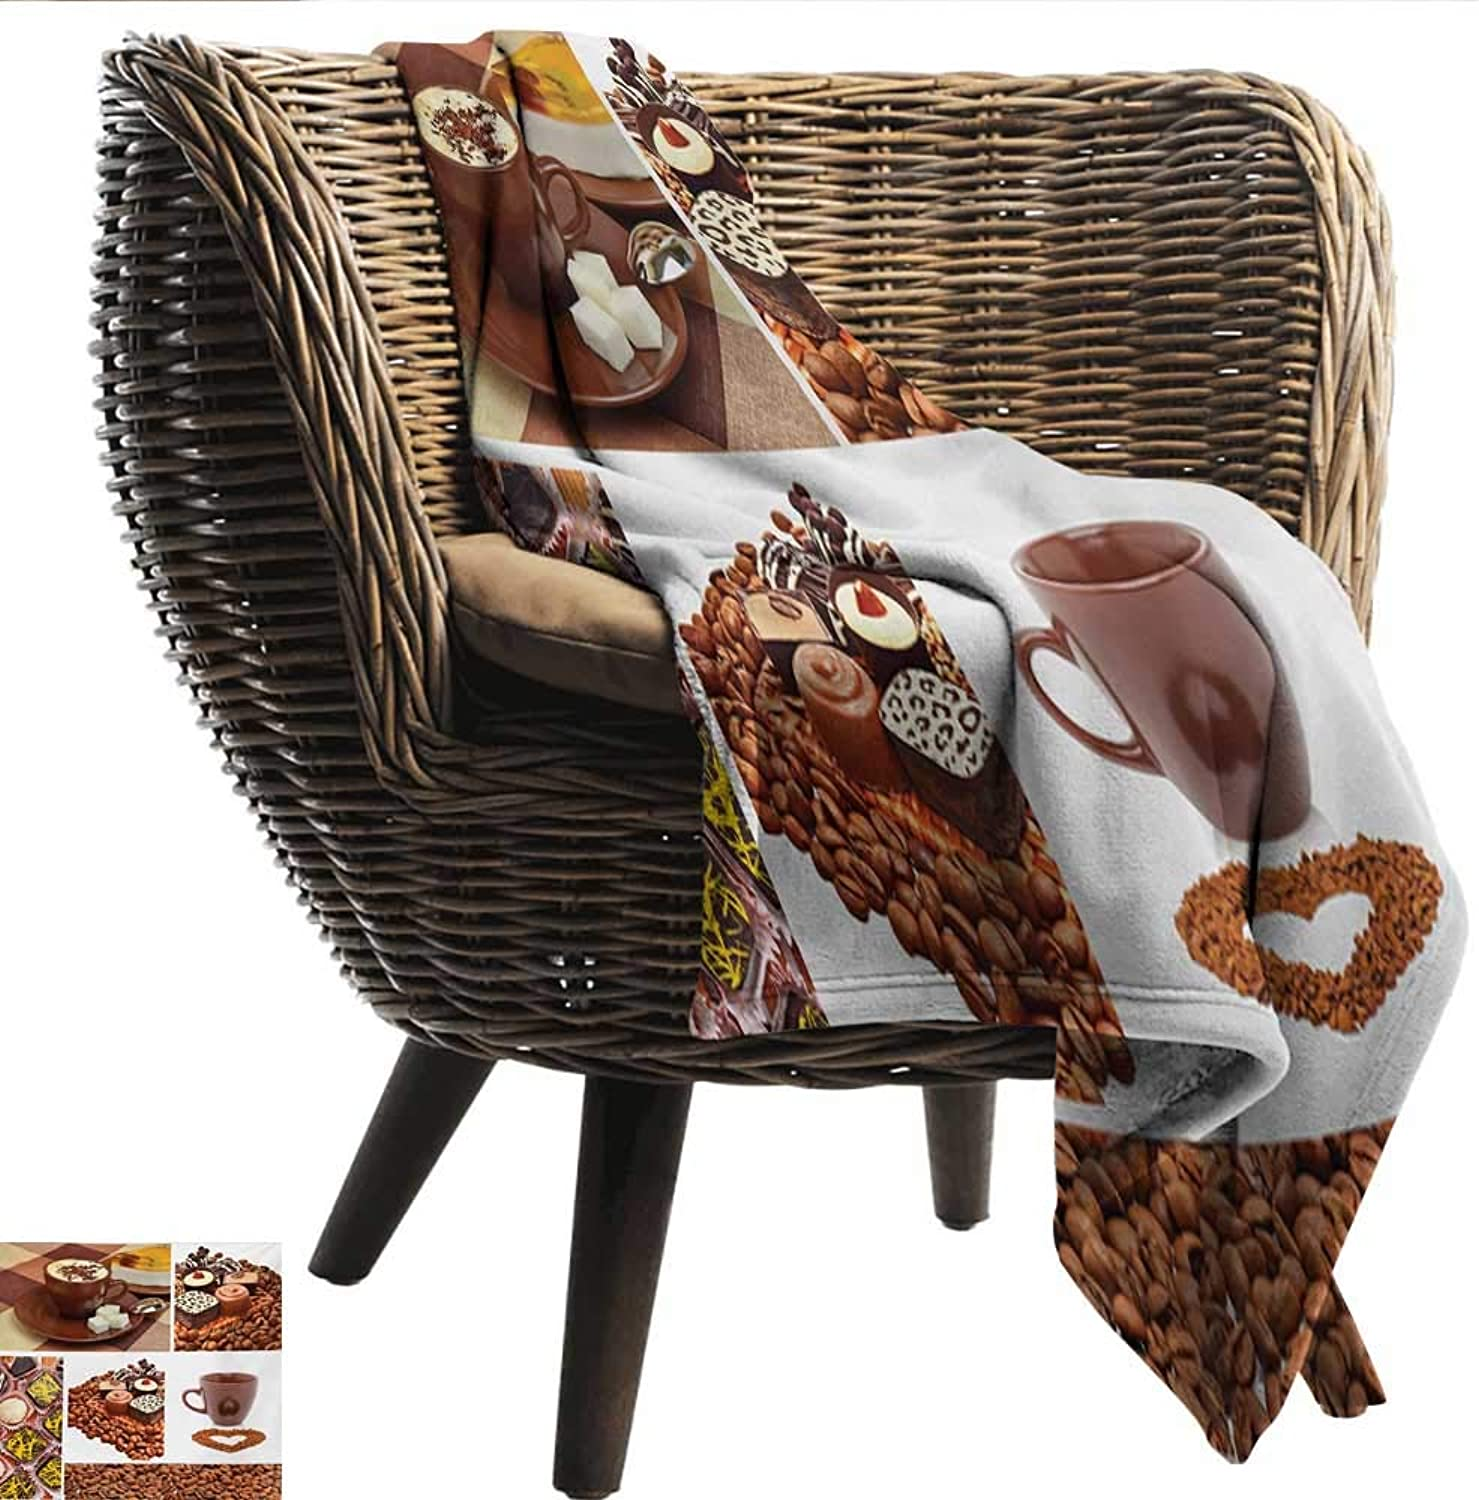 Anshesix Super Soft Blankets Kitchen Collection of Chocolate Sweets Muffins Coffee Beans and Mugs Cappuccino Pastries Print Summer Quilt Comforter W60 xL51 Sofa,Picnic,Camping,Beach,Everyday use